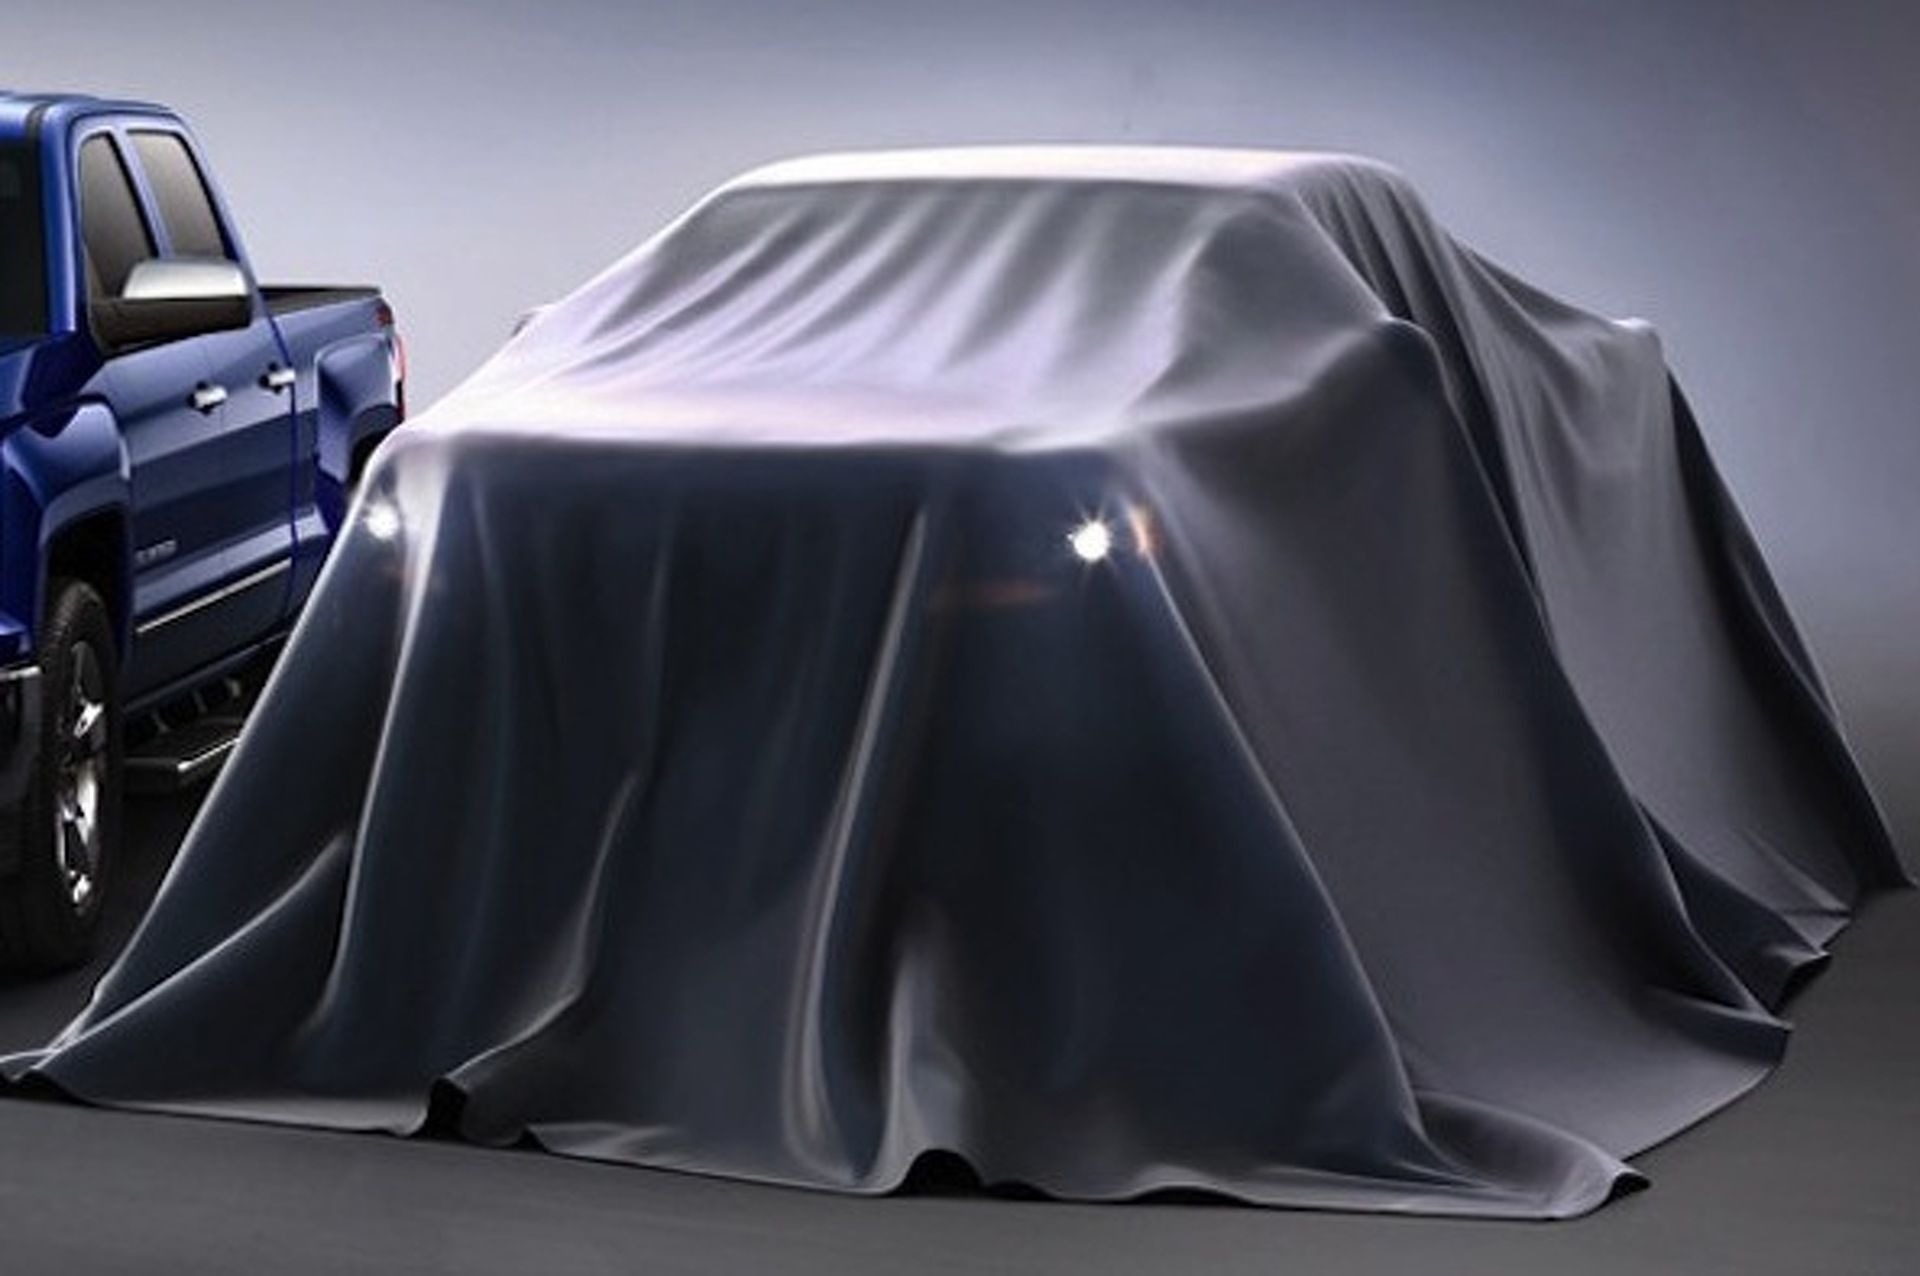 2013 LA Auto Show: What to Expect